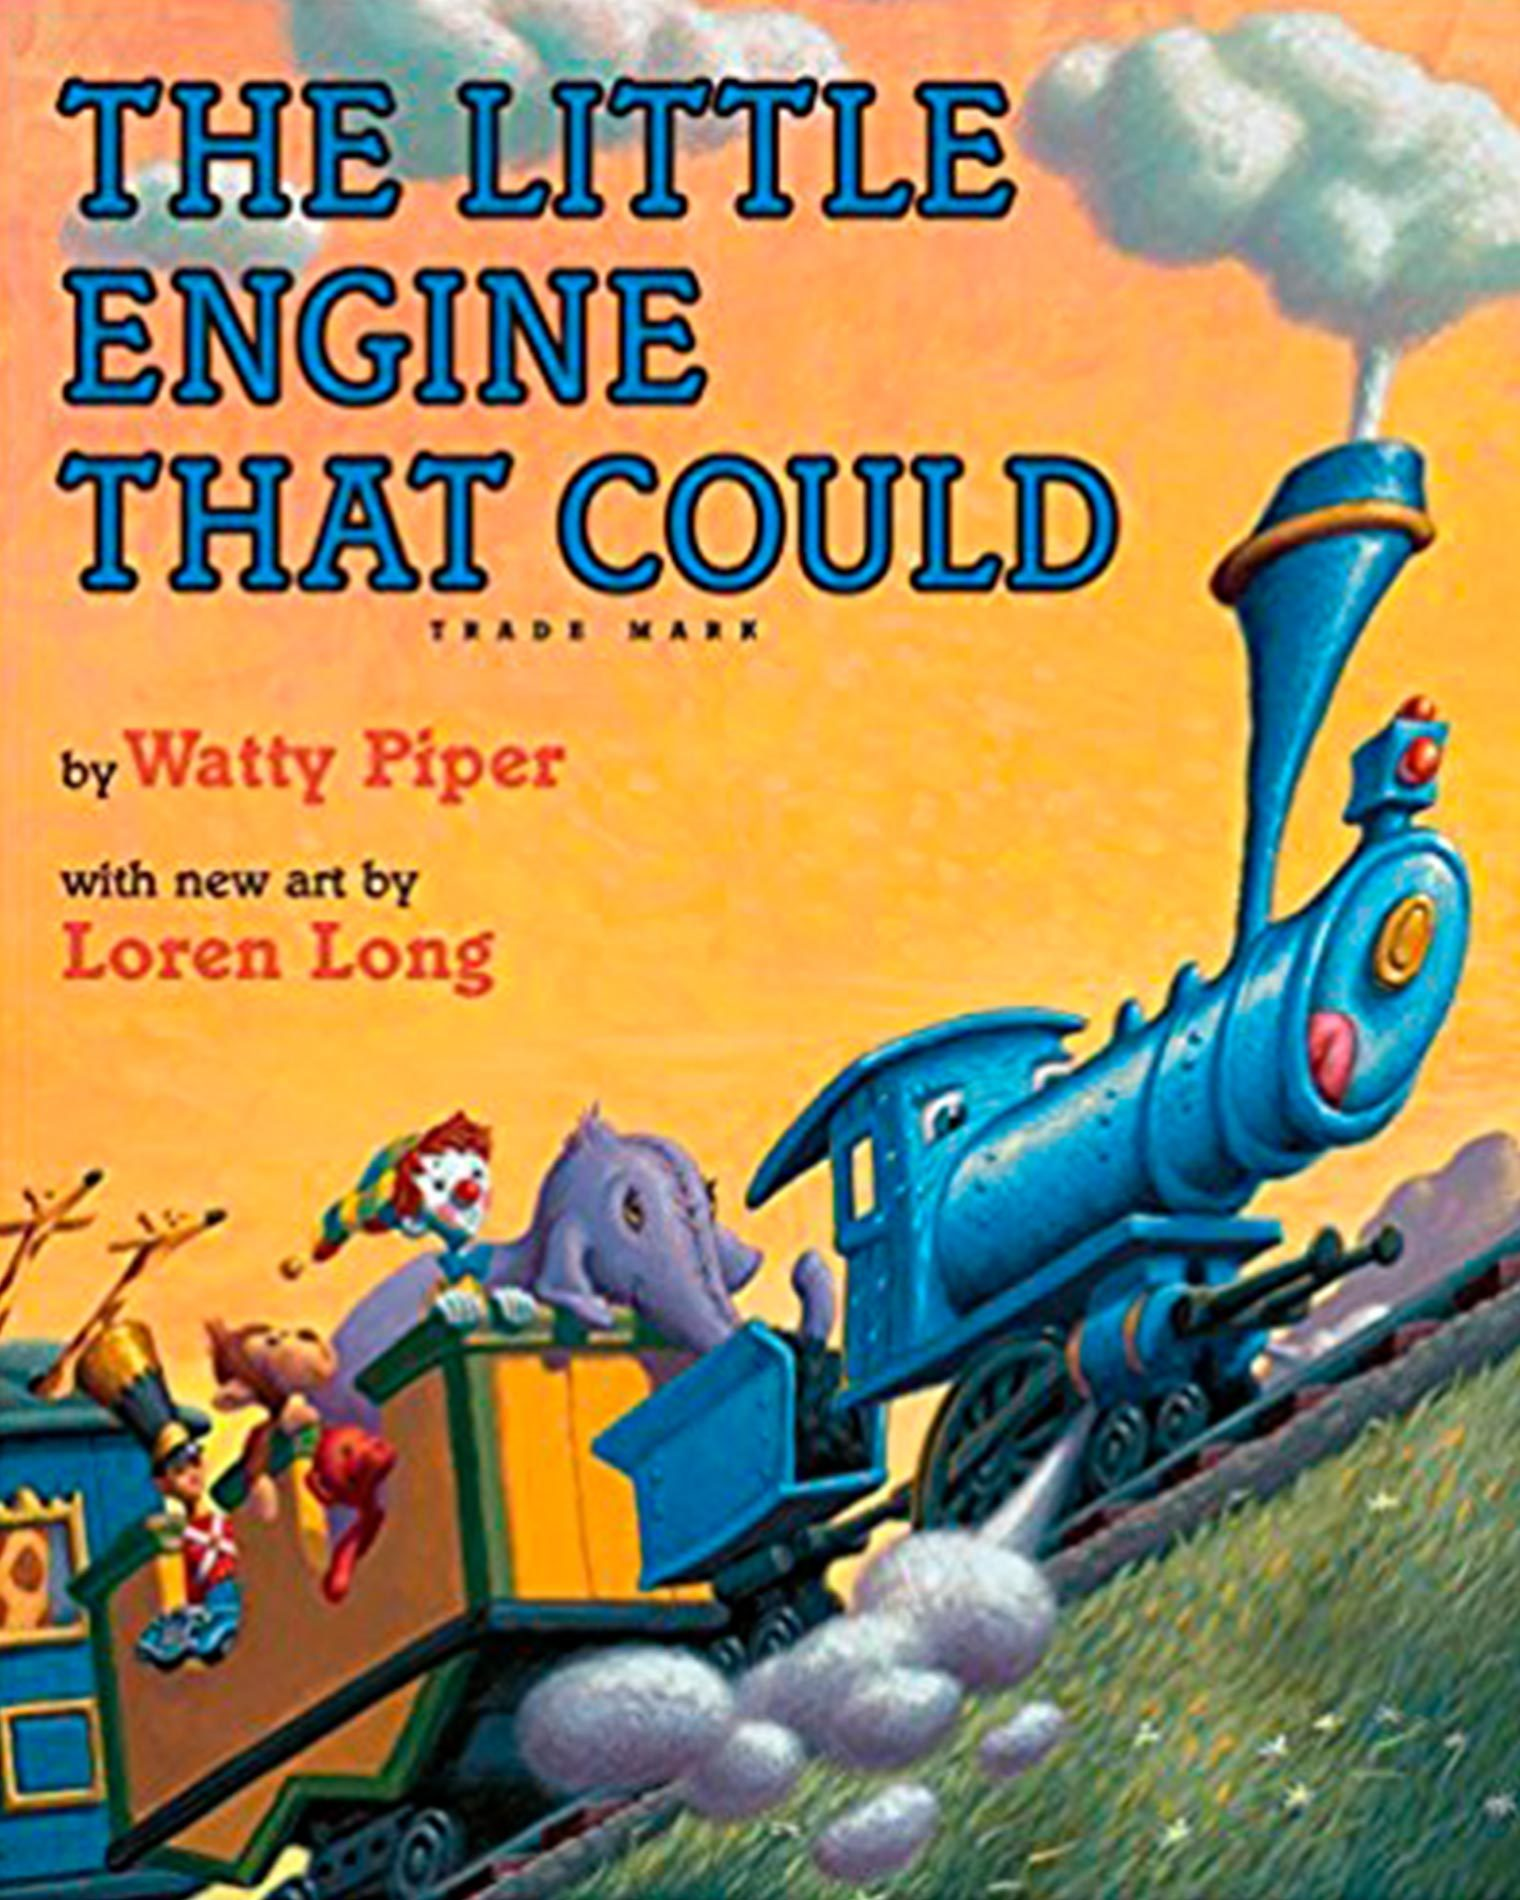 The Little Engine that Could classic children's story books